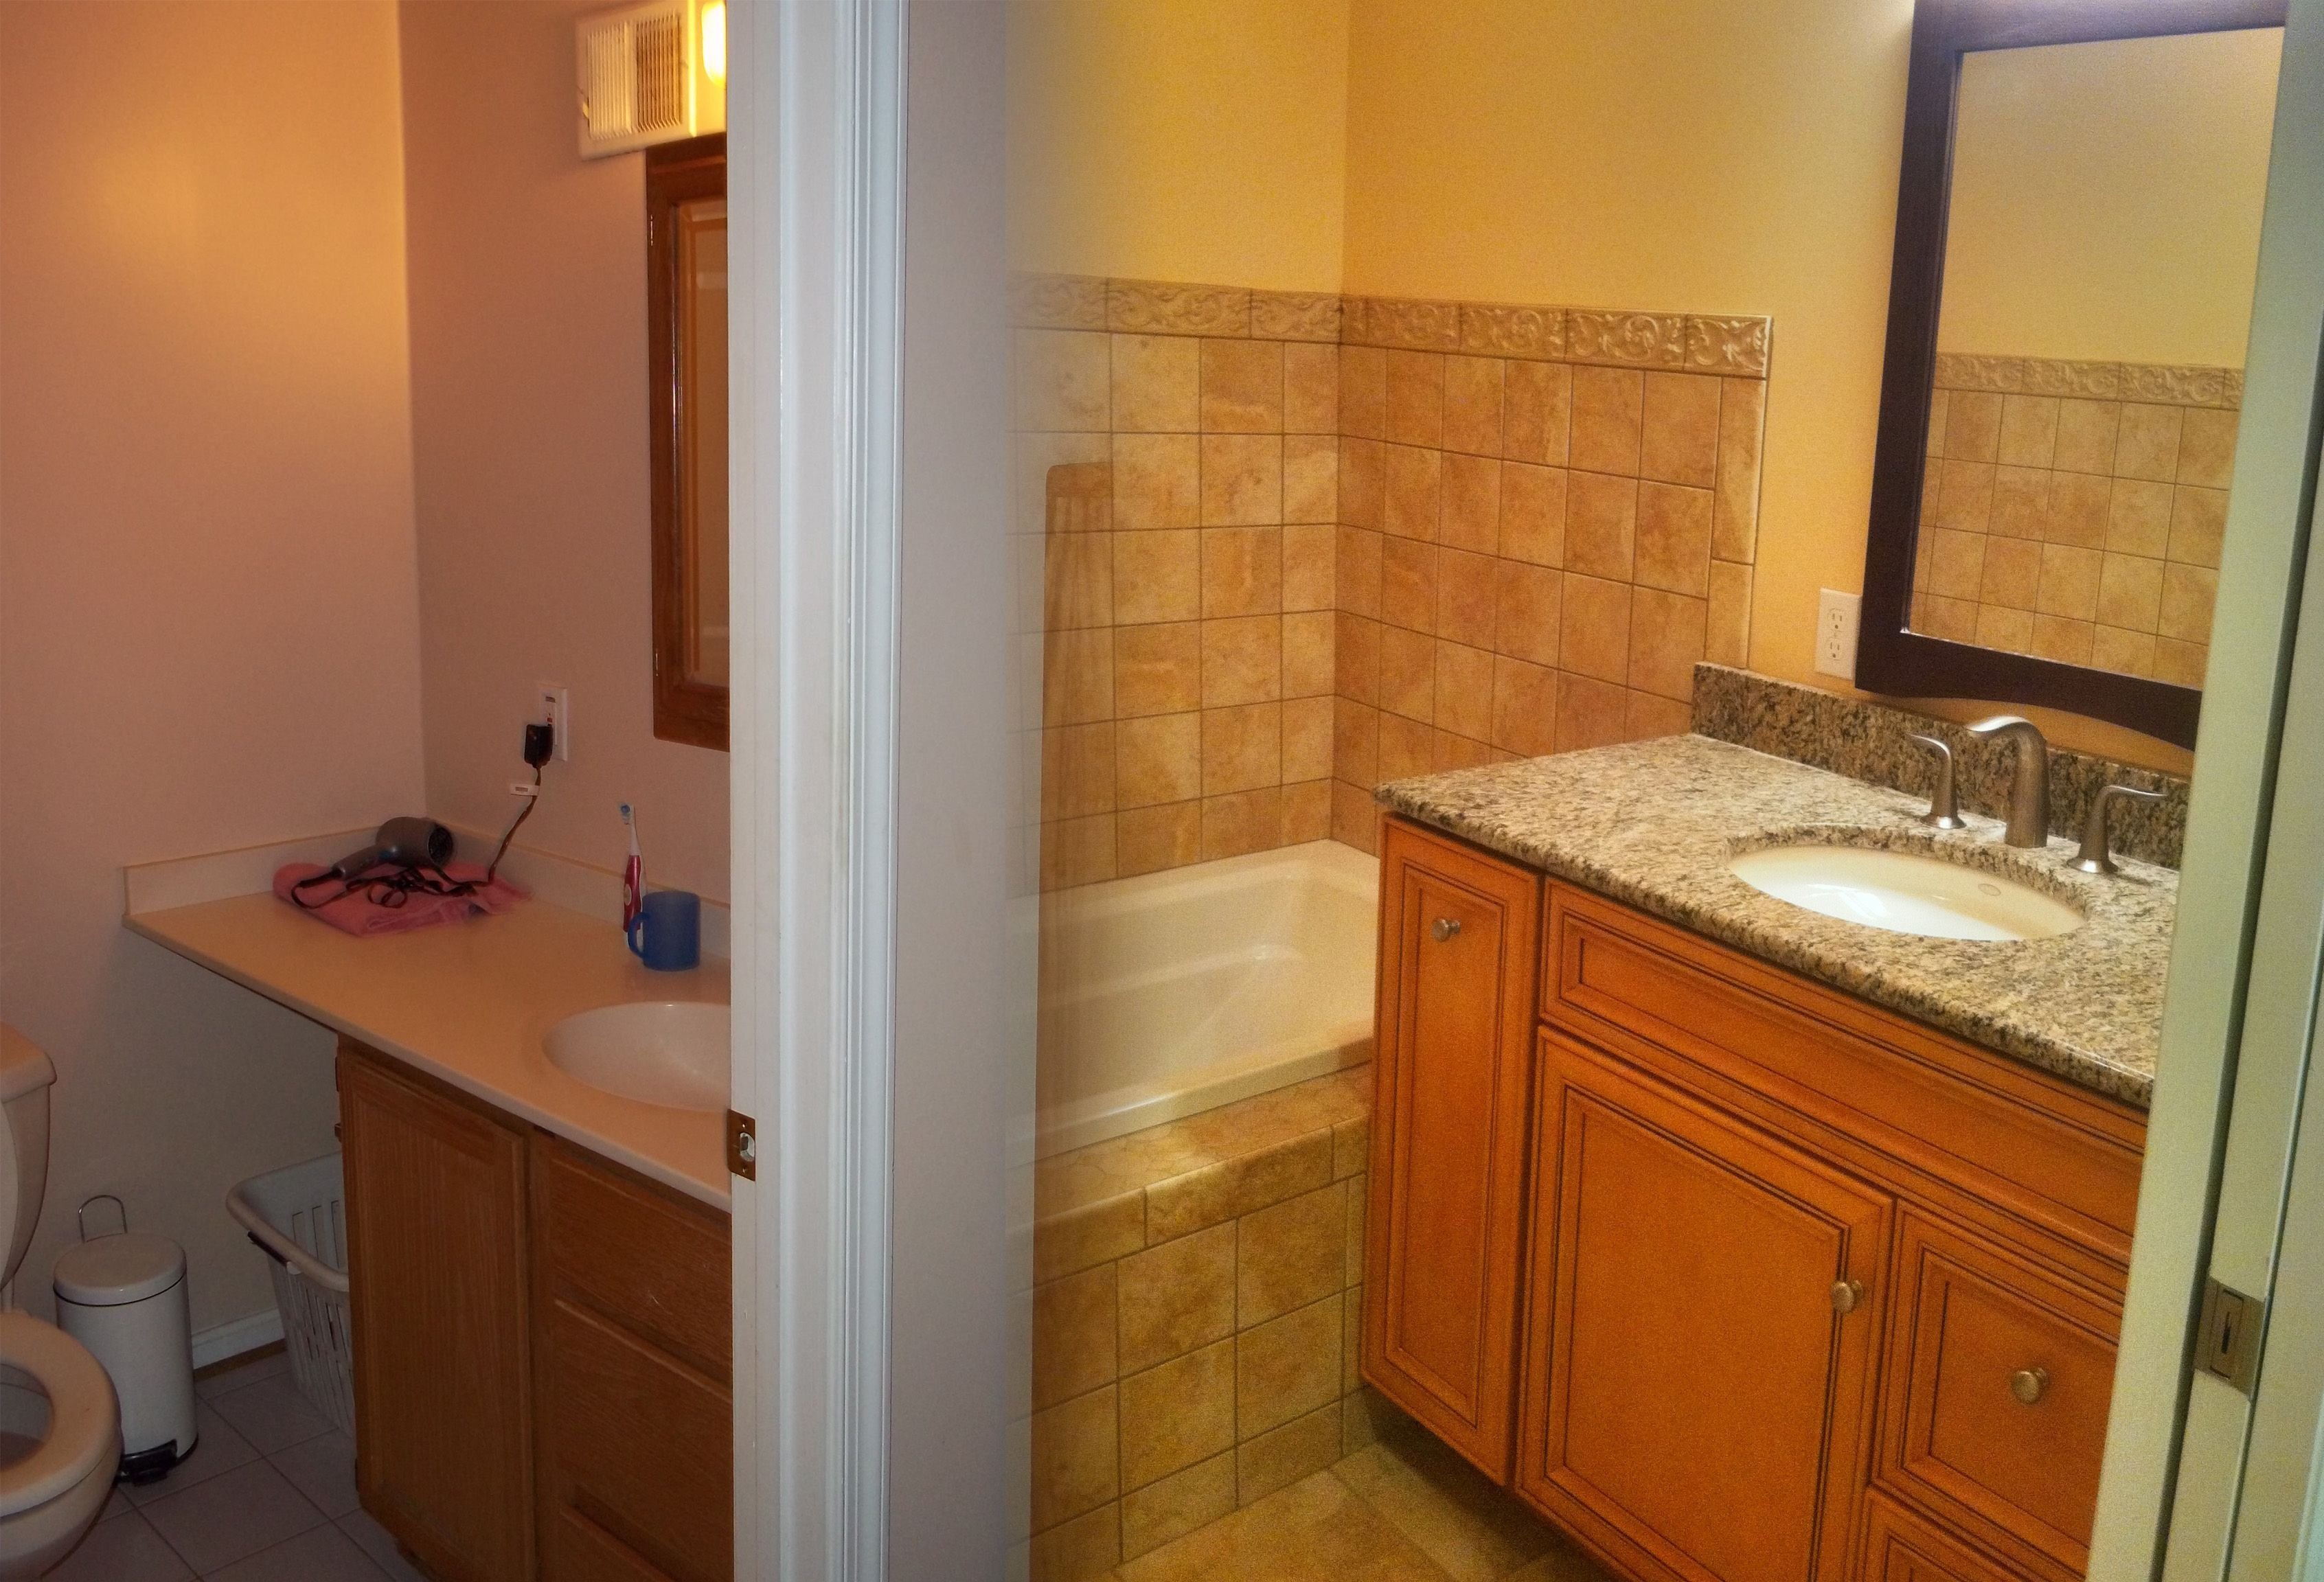 1960s bathroom renovation before and after for Remodeling companies